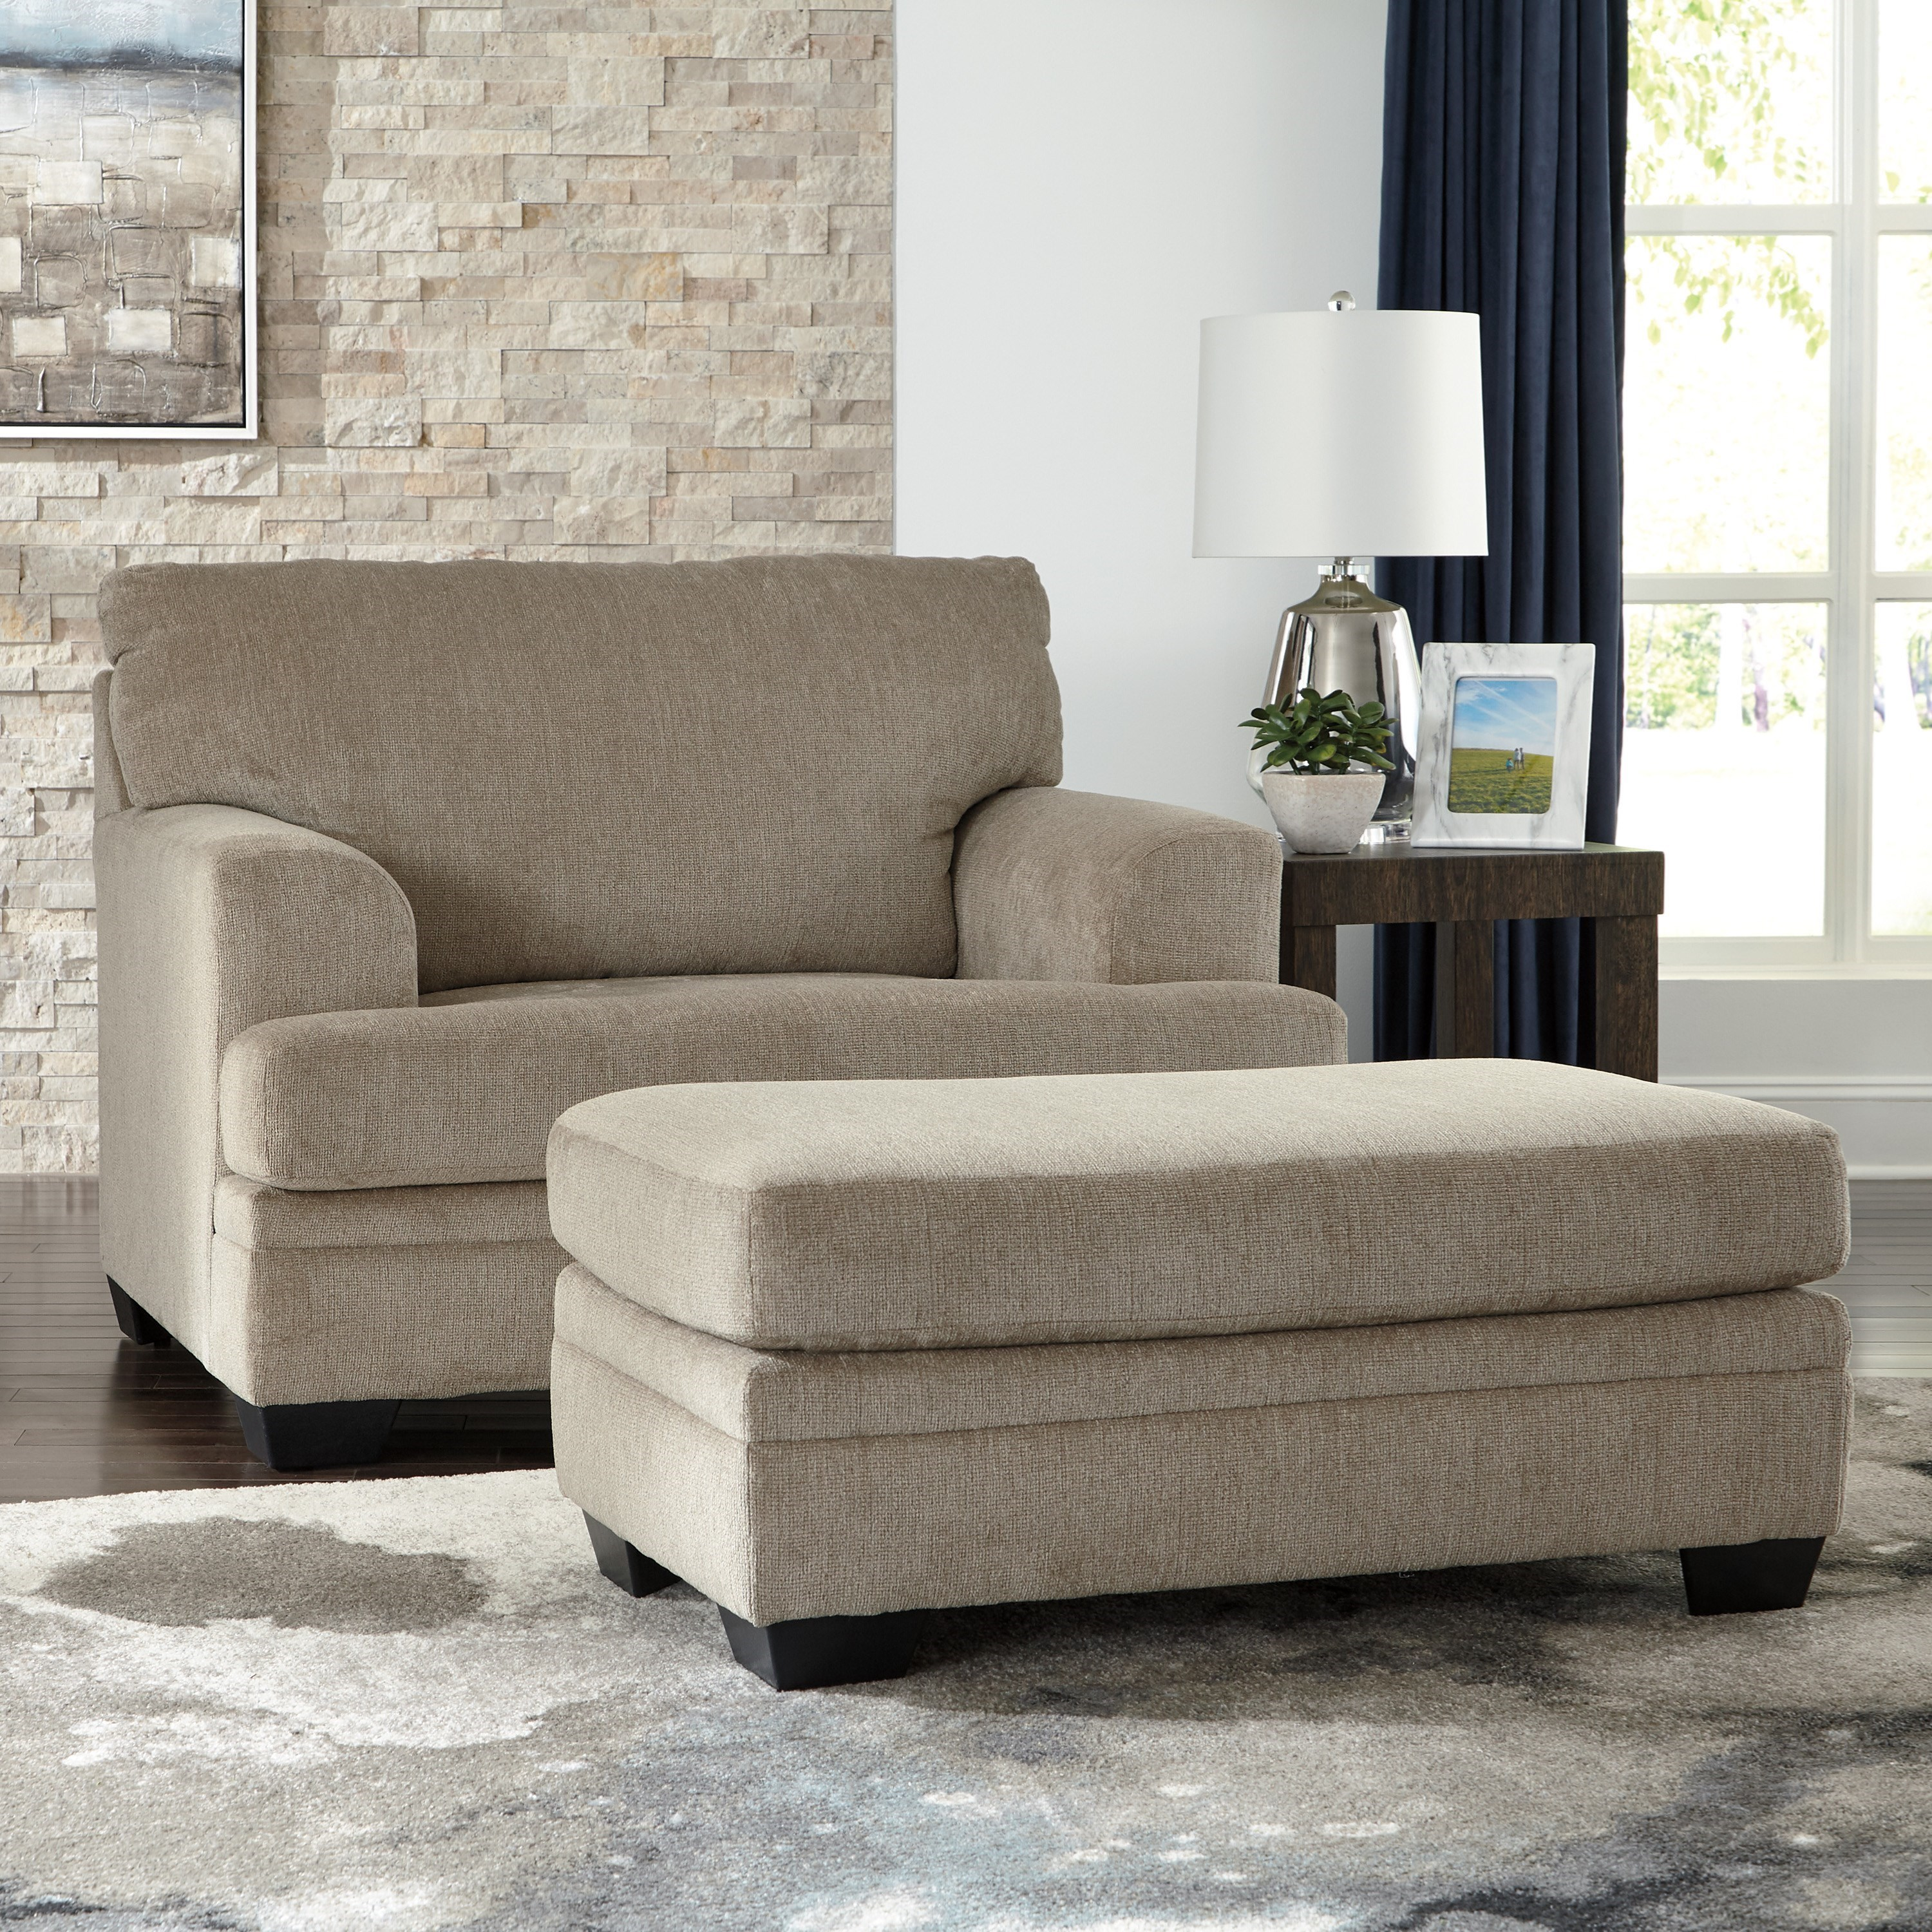 Dorsten Chair and a Half with Ottoman by Signature Design by Ashley at Zak's Warehouse Clearance Center